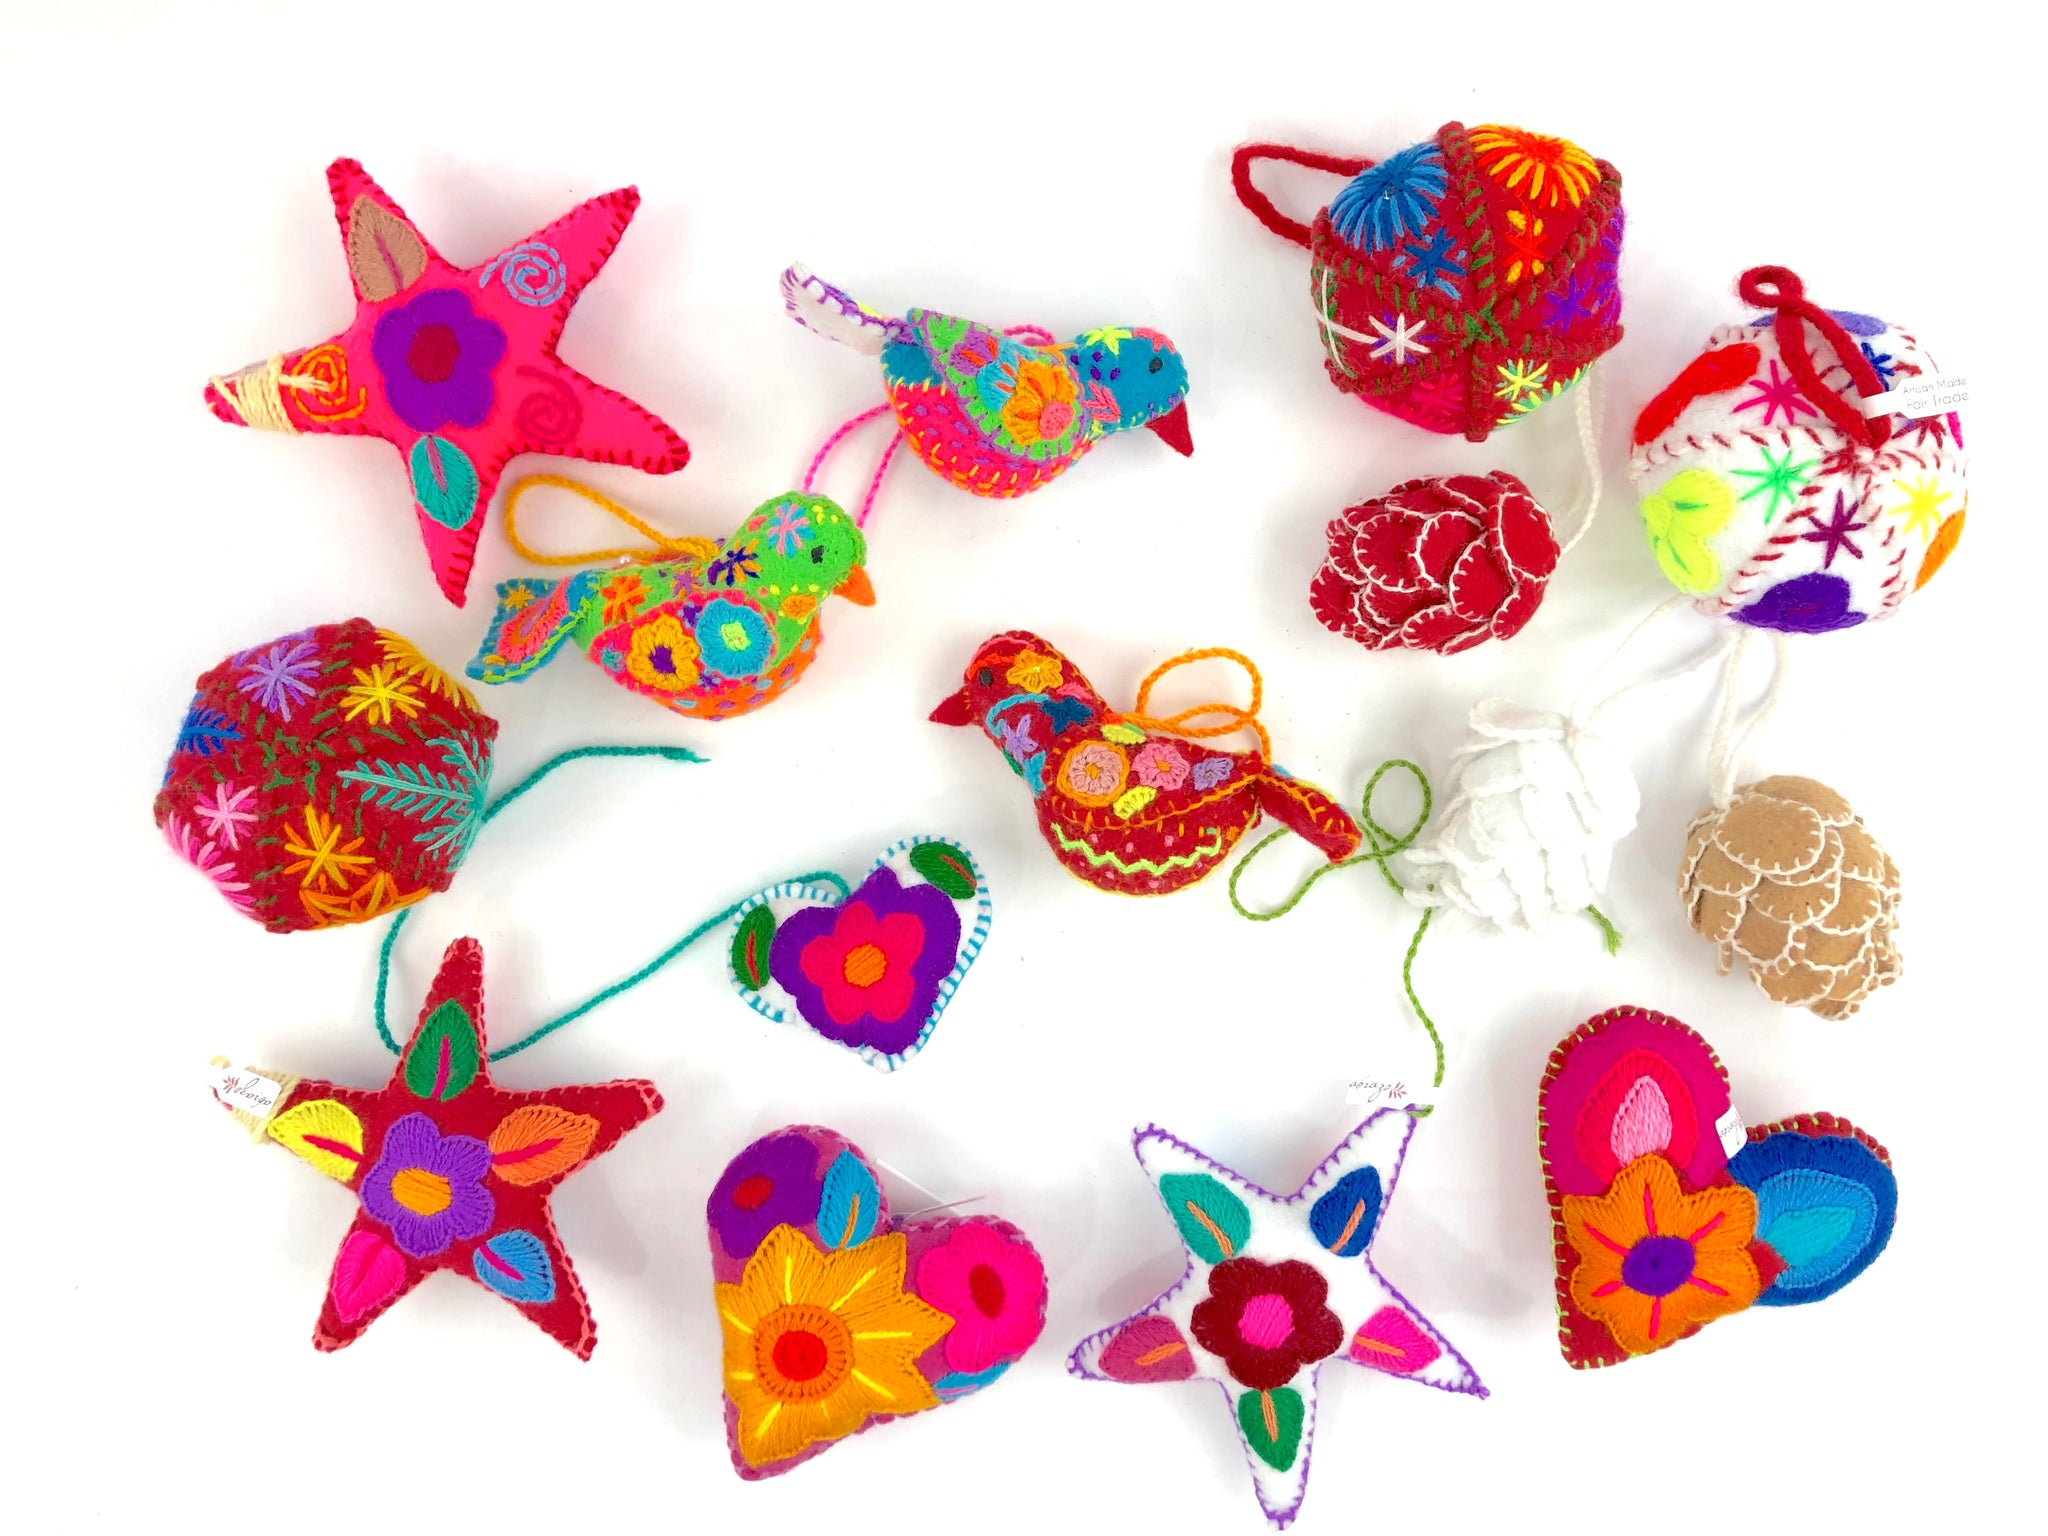 Embroidered felt ornament, embroidered ornaments, Mexican ornaments, embroidered heart, embroidered star